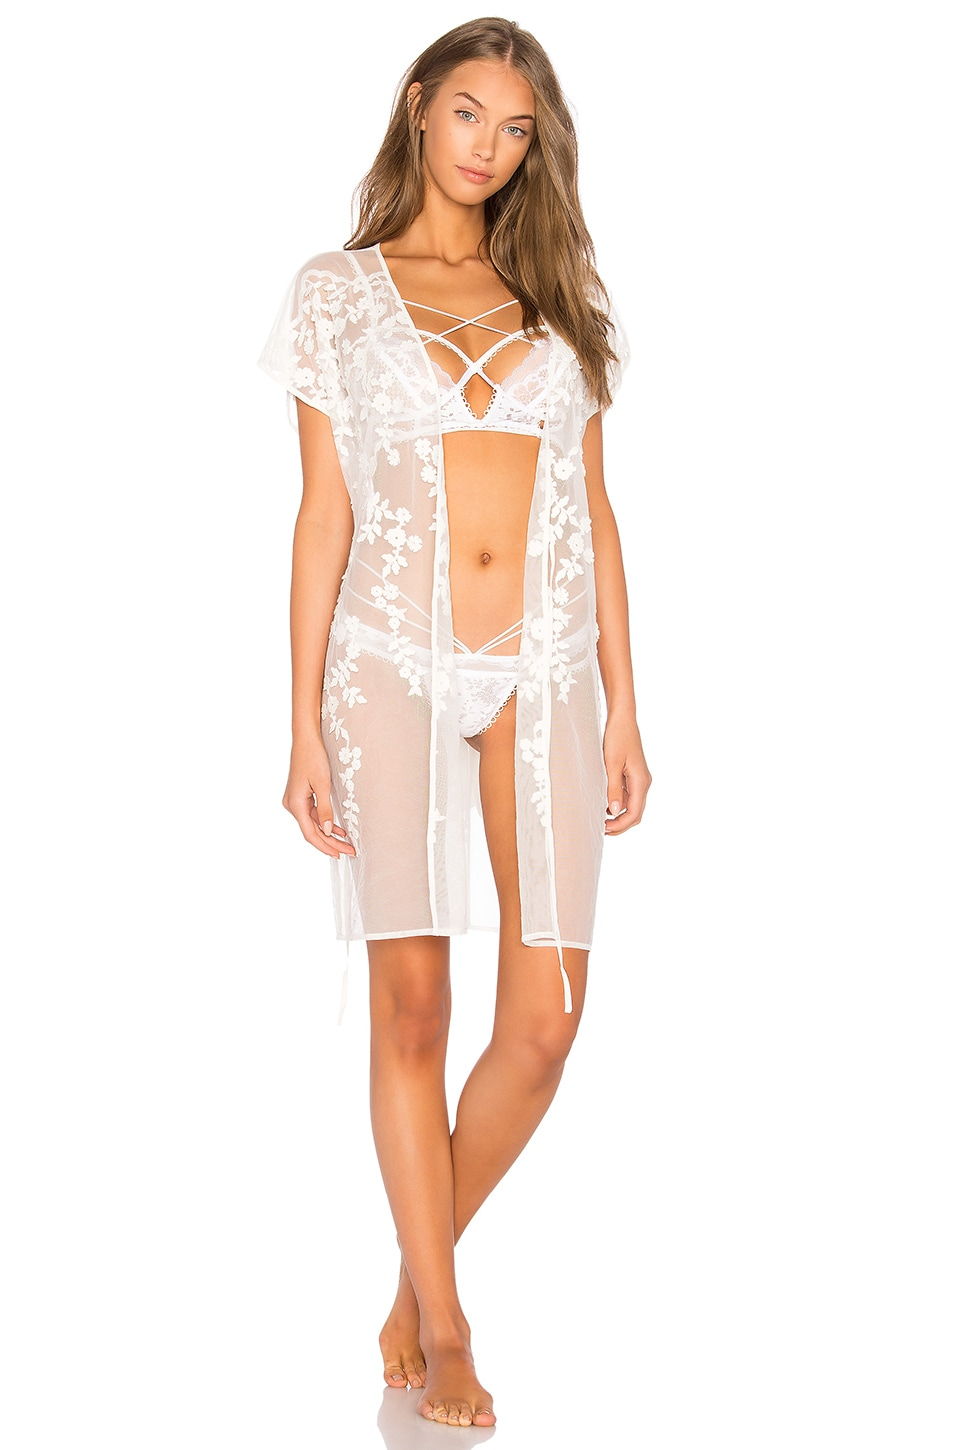 Evette Robe by Flora Nikrooz